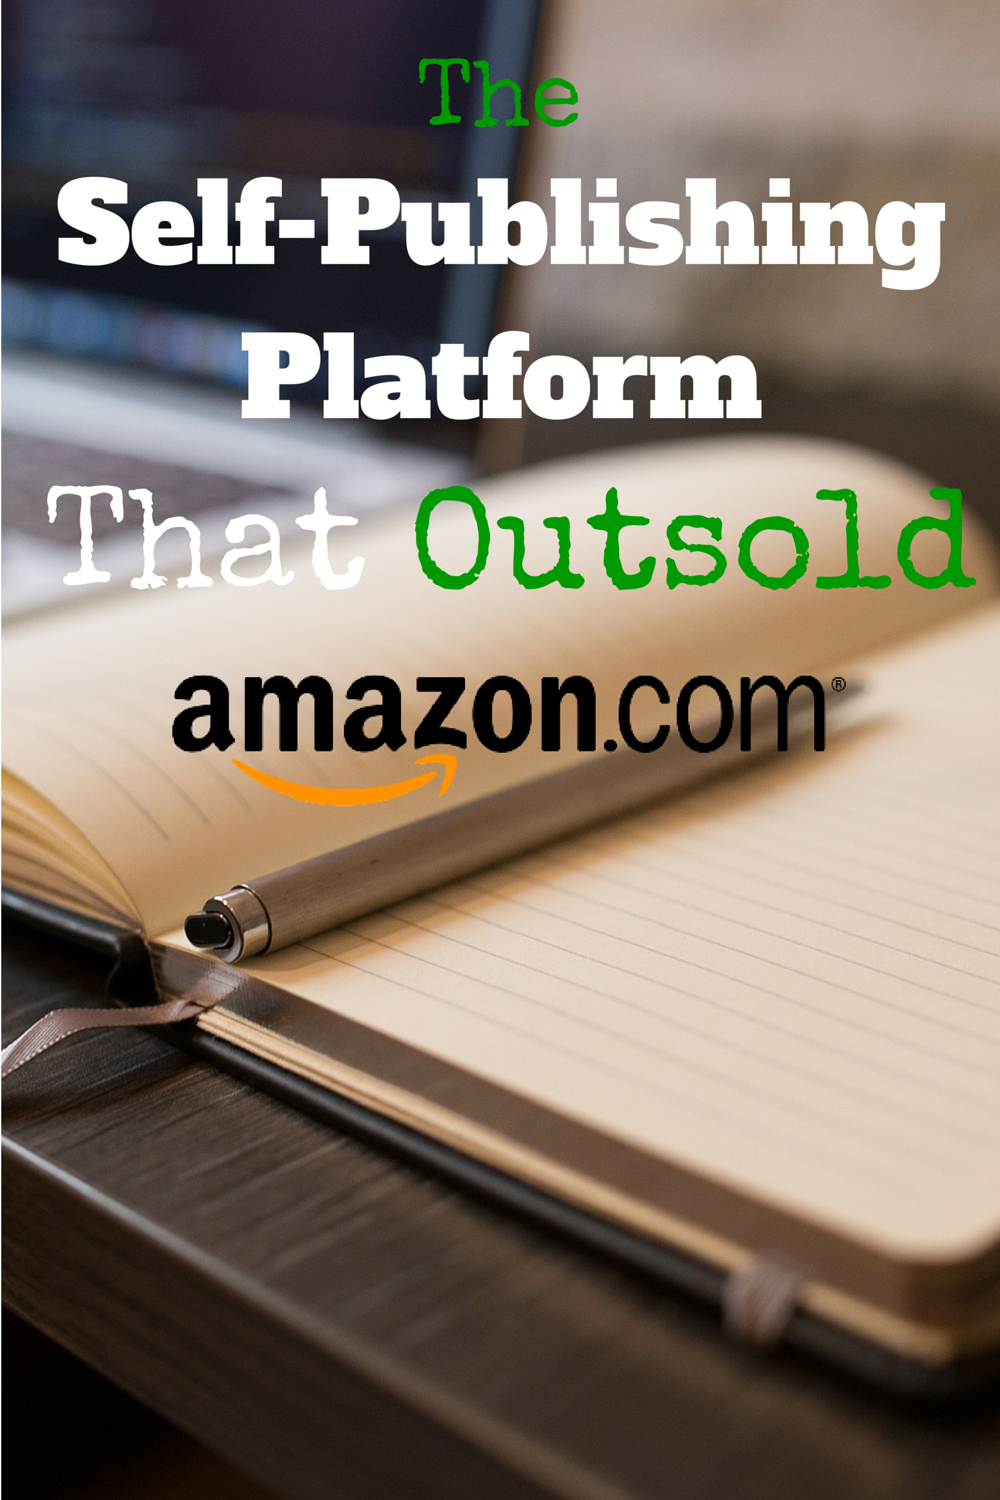 The Self-Publishing Platform That Outsold Amazon